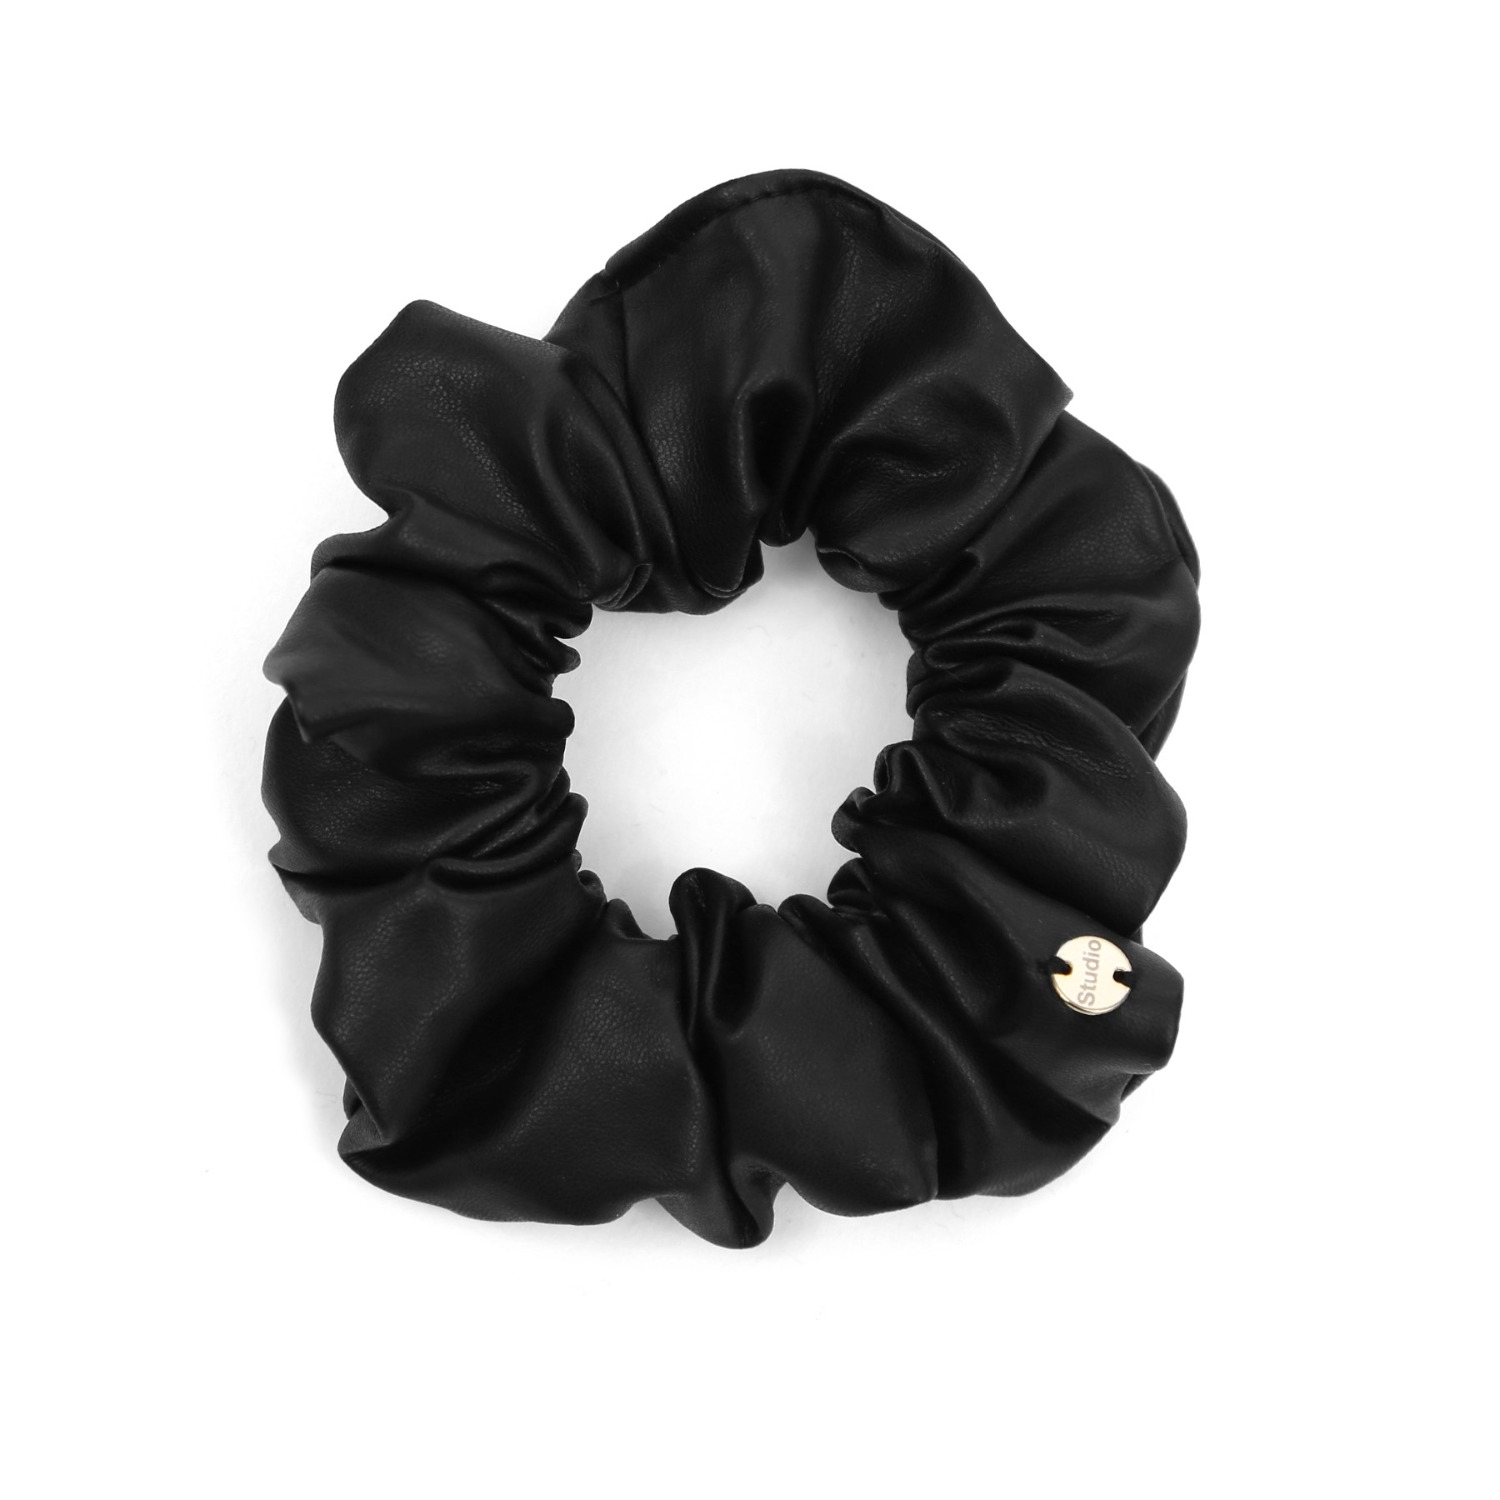 SCRUNCHIE / TINY / JEWEL / F LEATHER BLACK